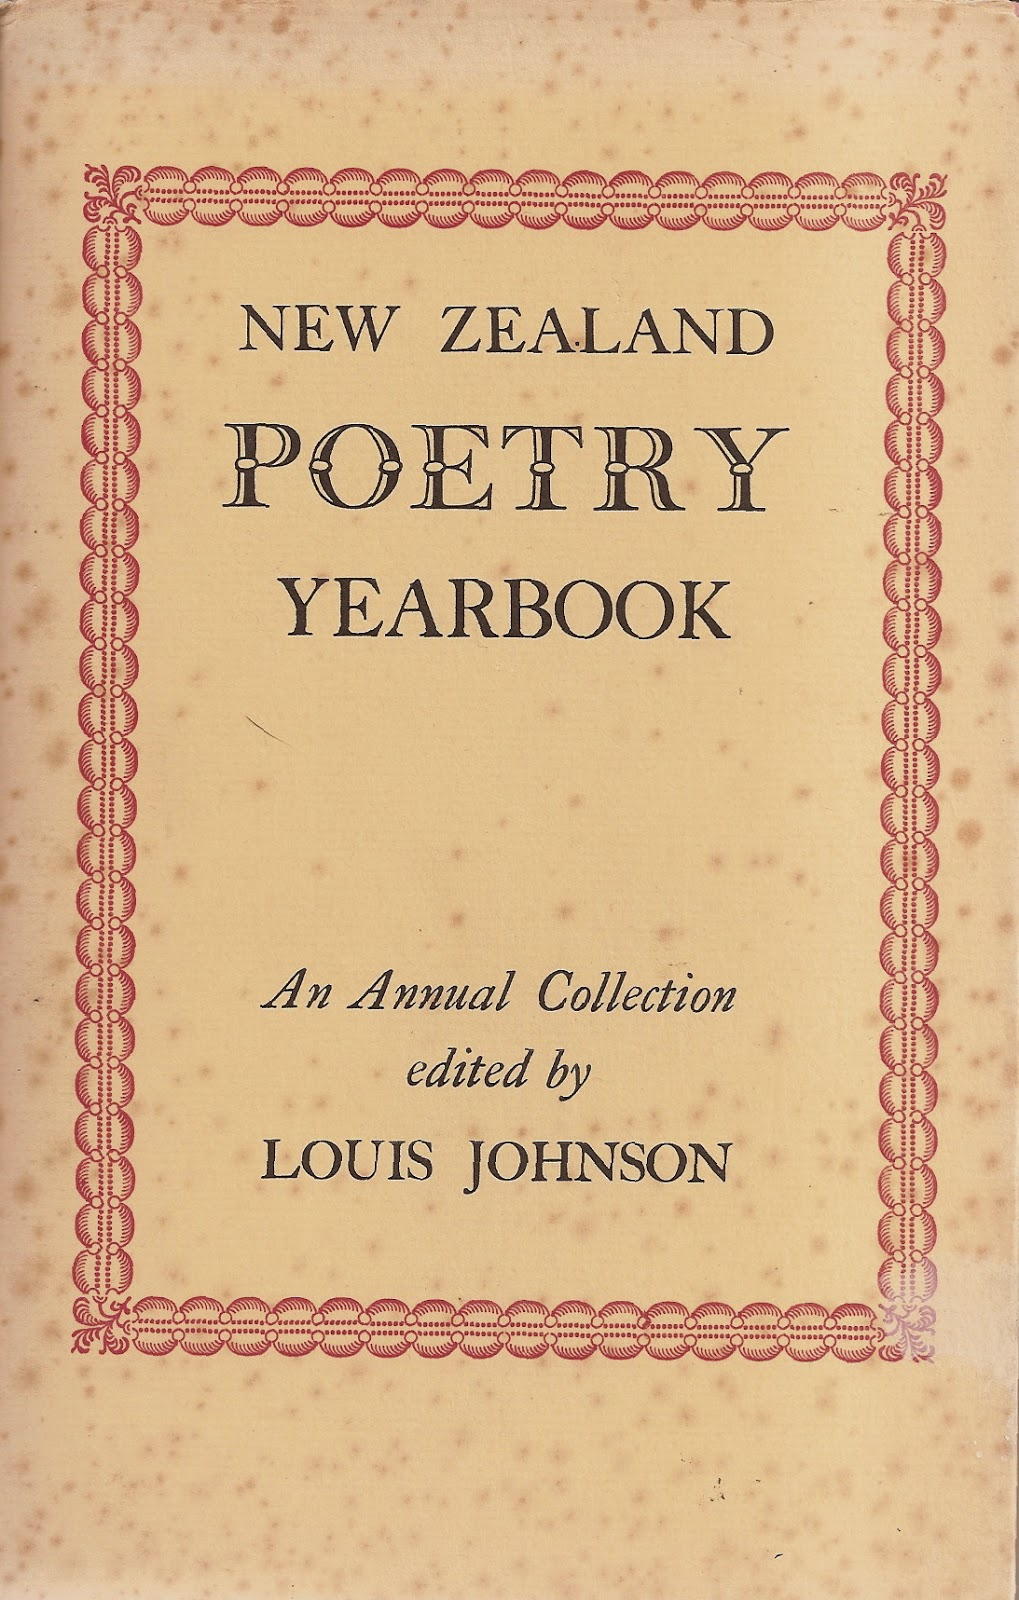 THE NEW ZEALAND OFFICIAL YEAR BOOK, 1953